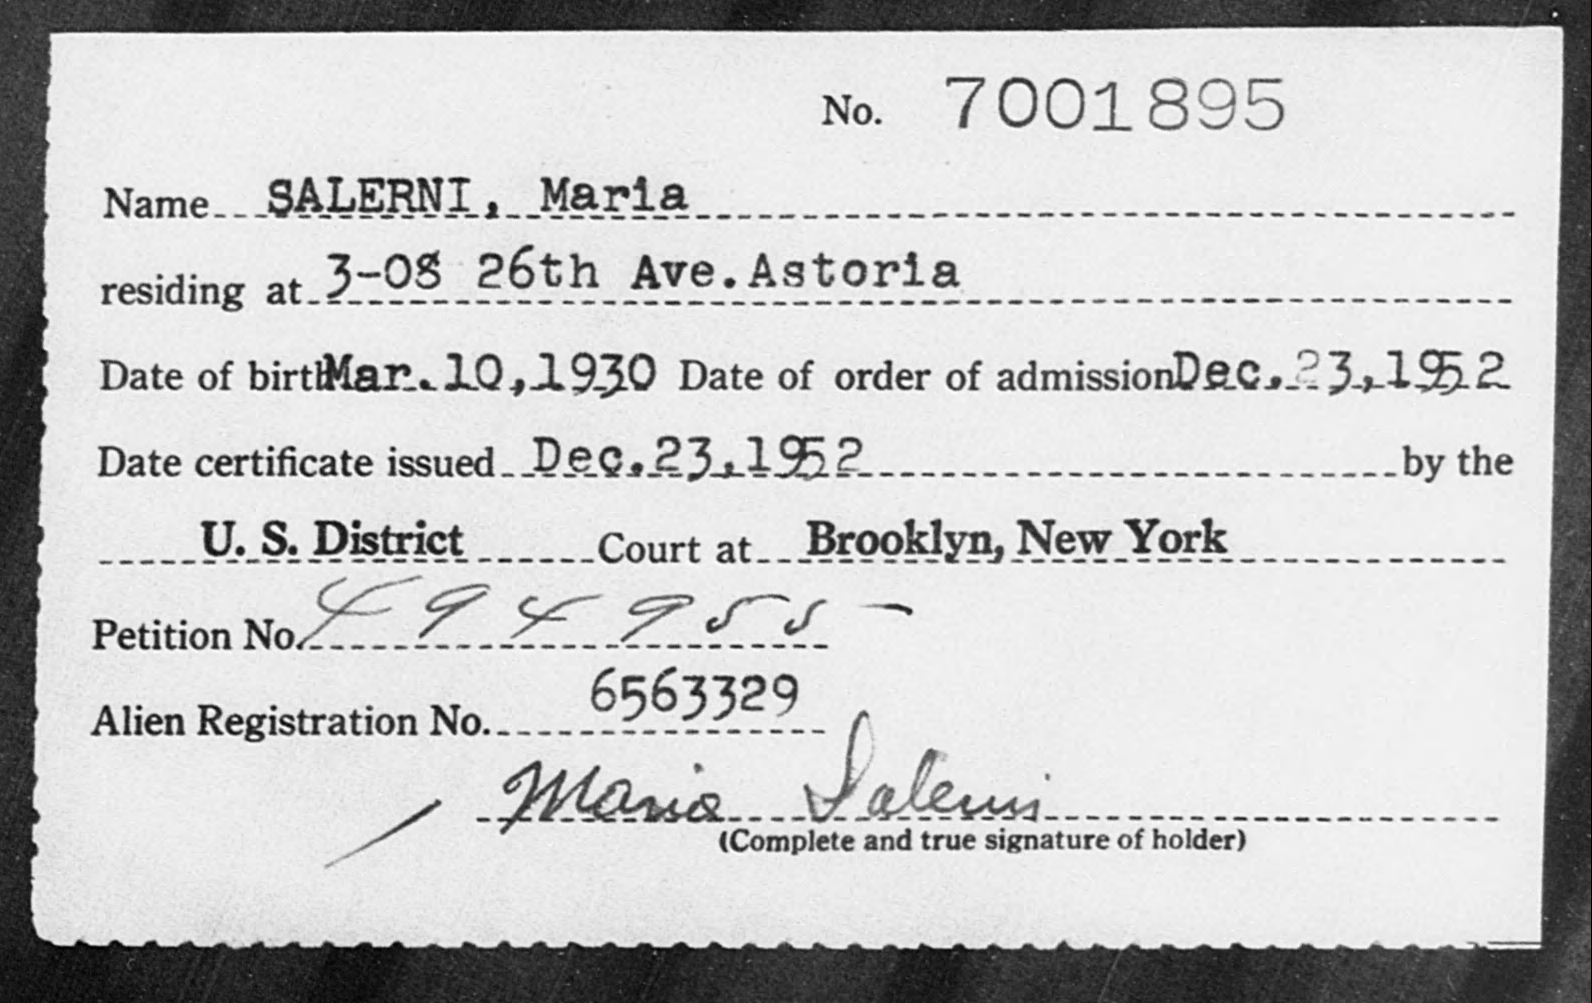 SALERNI, Maria - Born: 1930, Naturalized: 1952